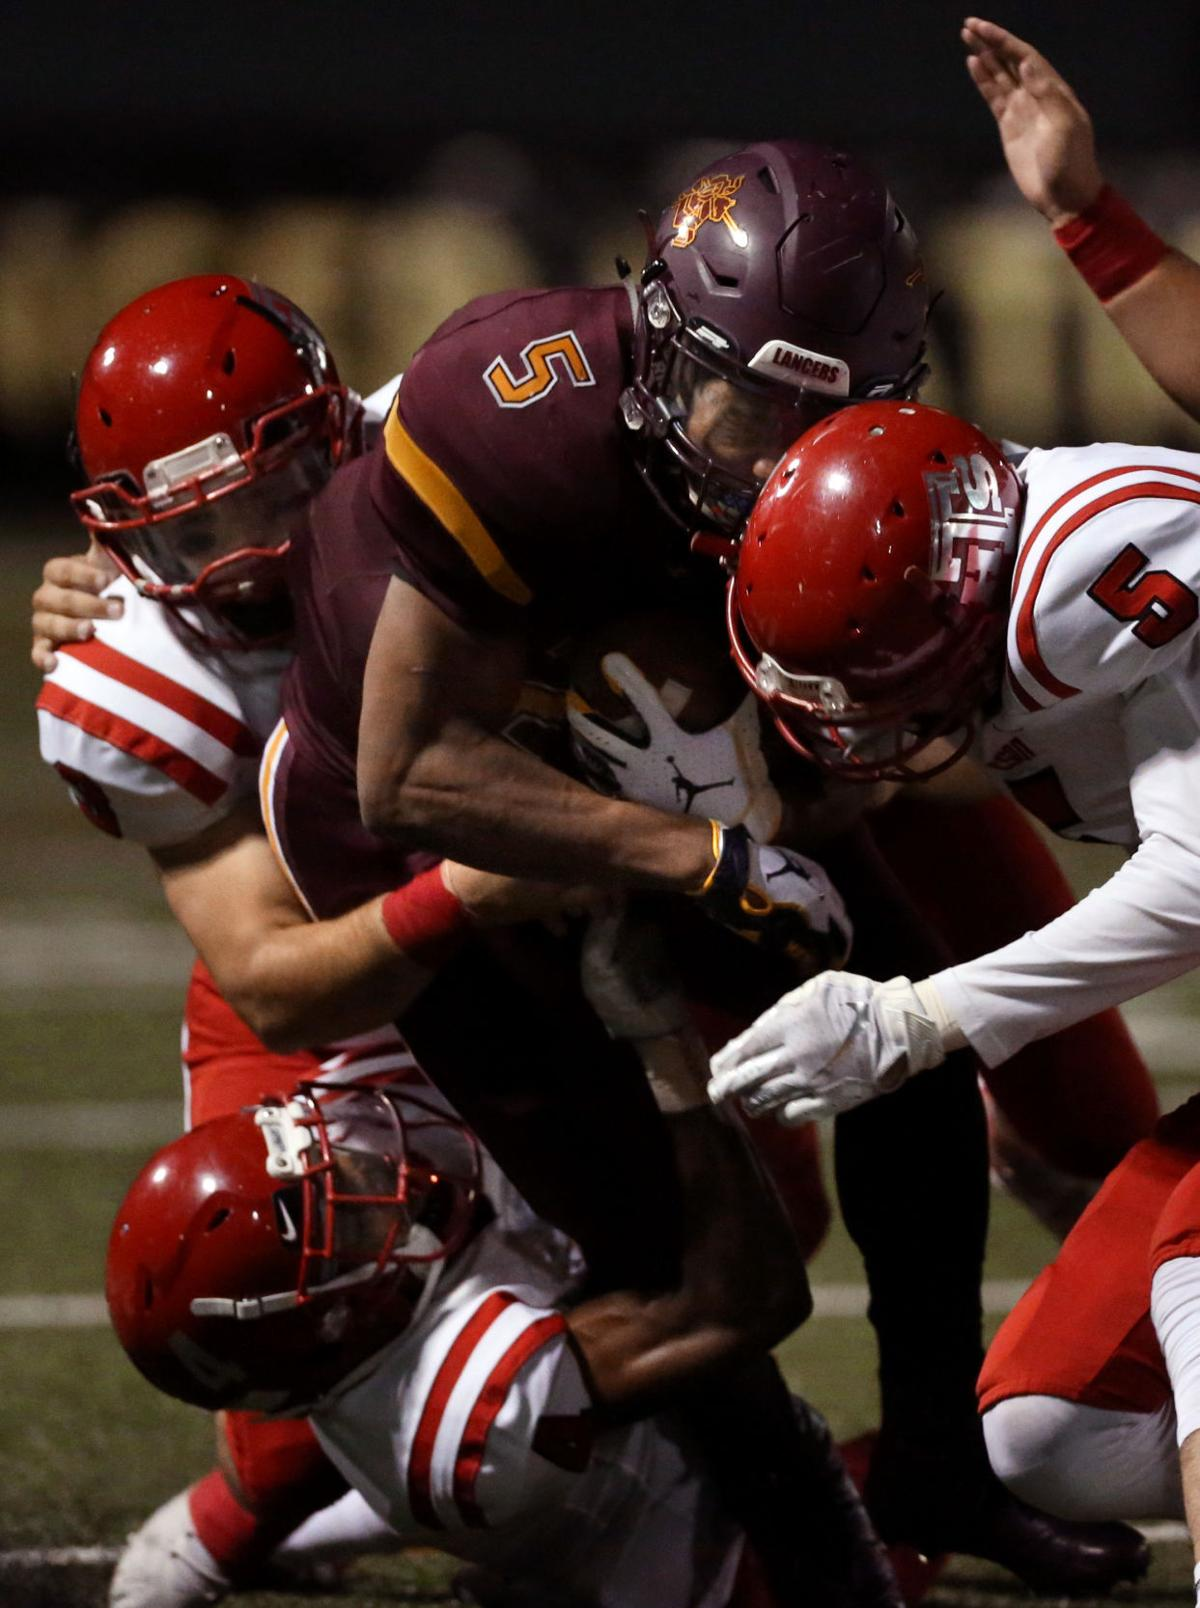 Salpointe Catholic stays undefeated, hands Tucson High first loss